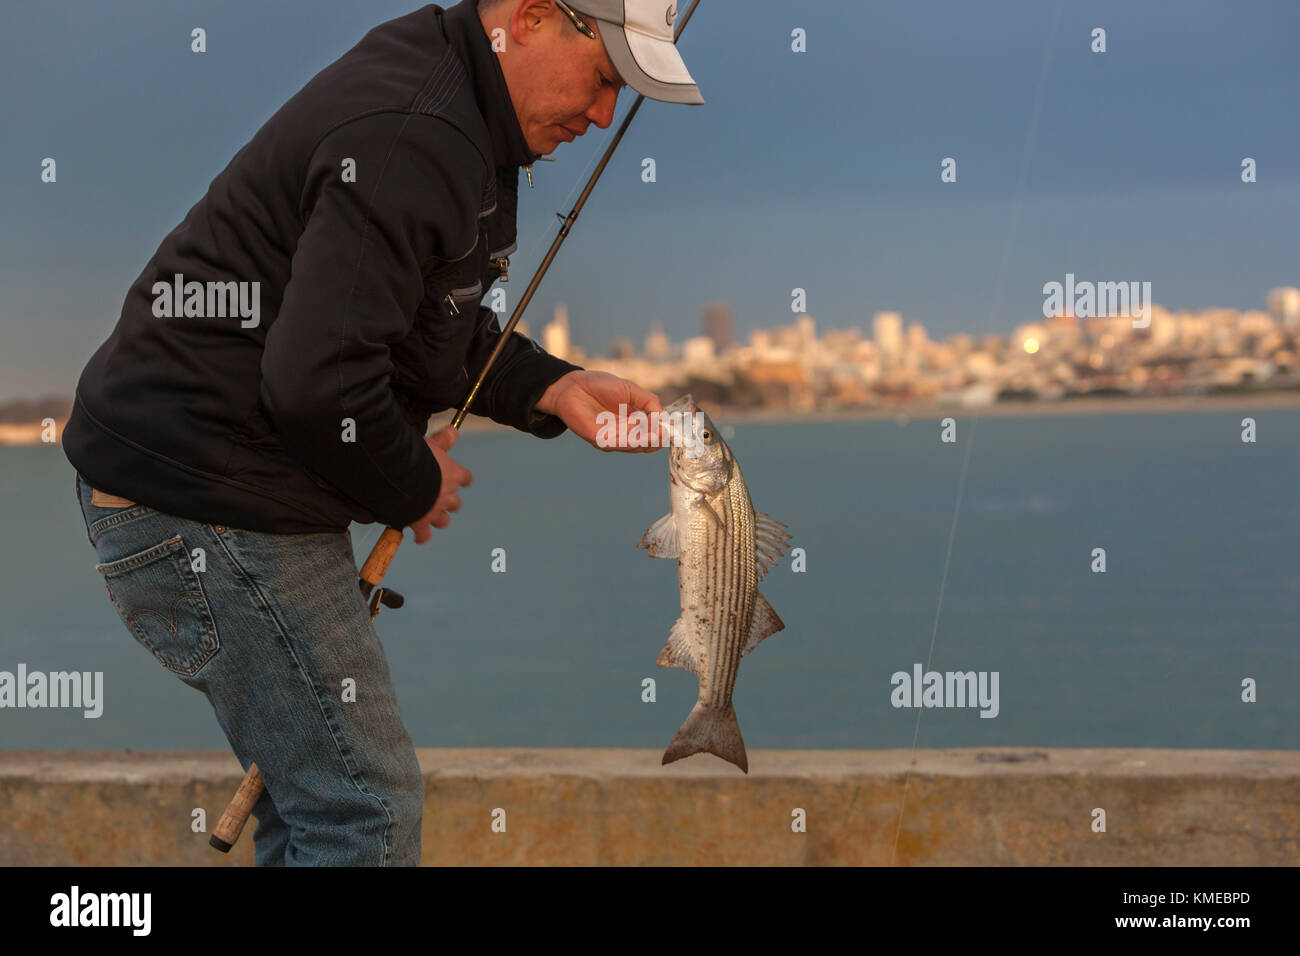 Fischer Holding gefangen Striped Bass (morone Saxatilis), Golden Gate pier, San Francisco, Kalifornien, USA Stockfoto